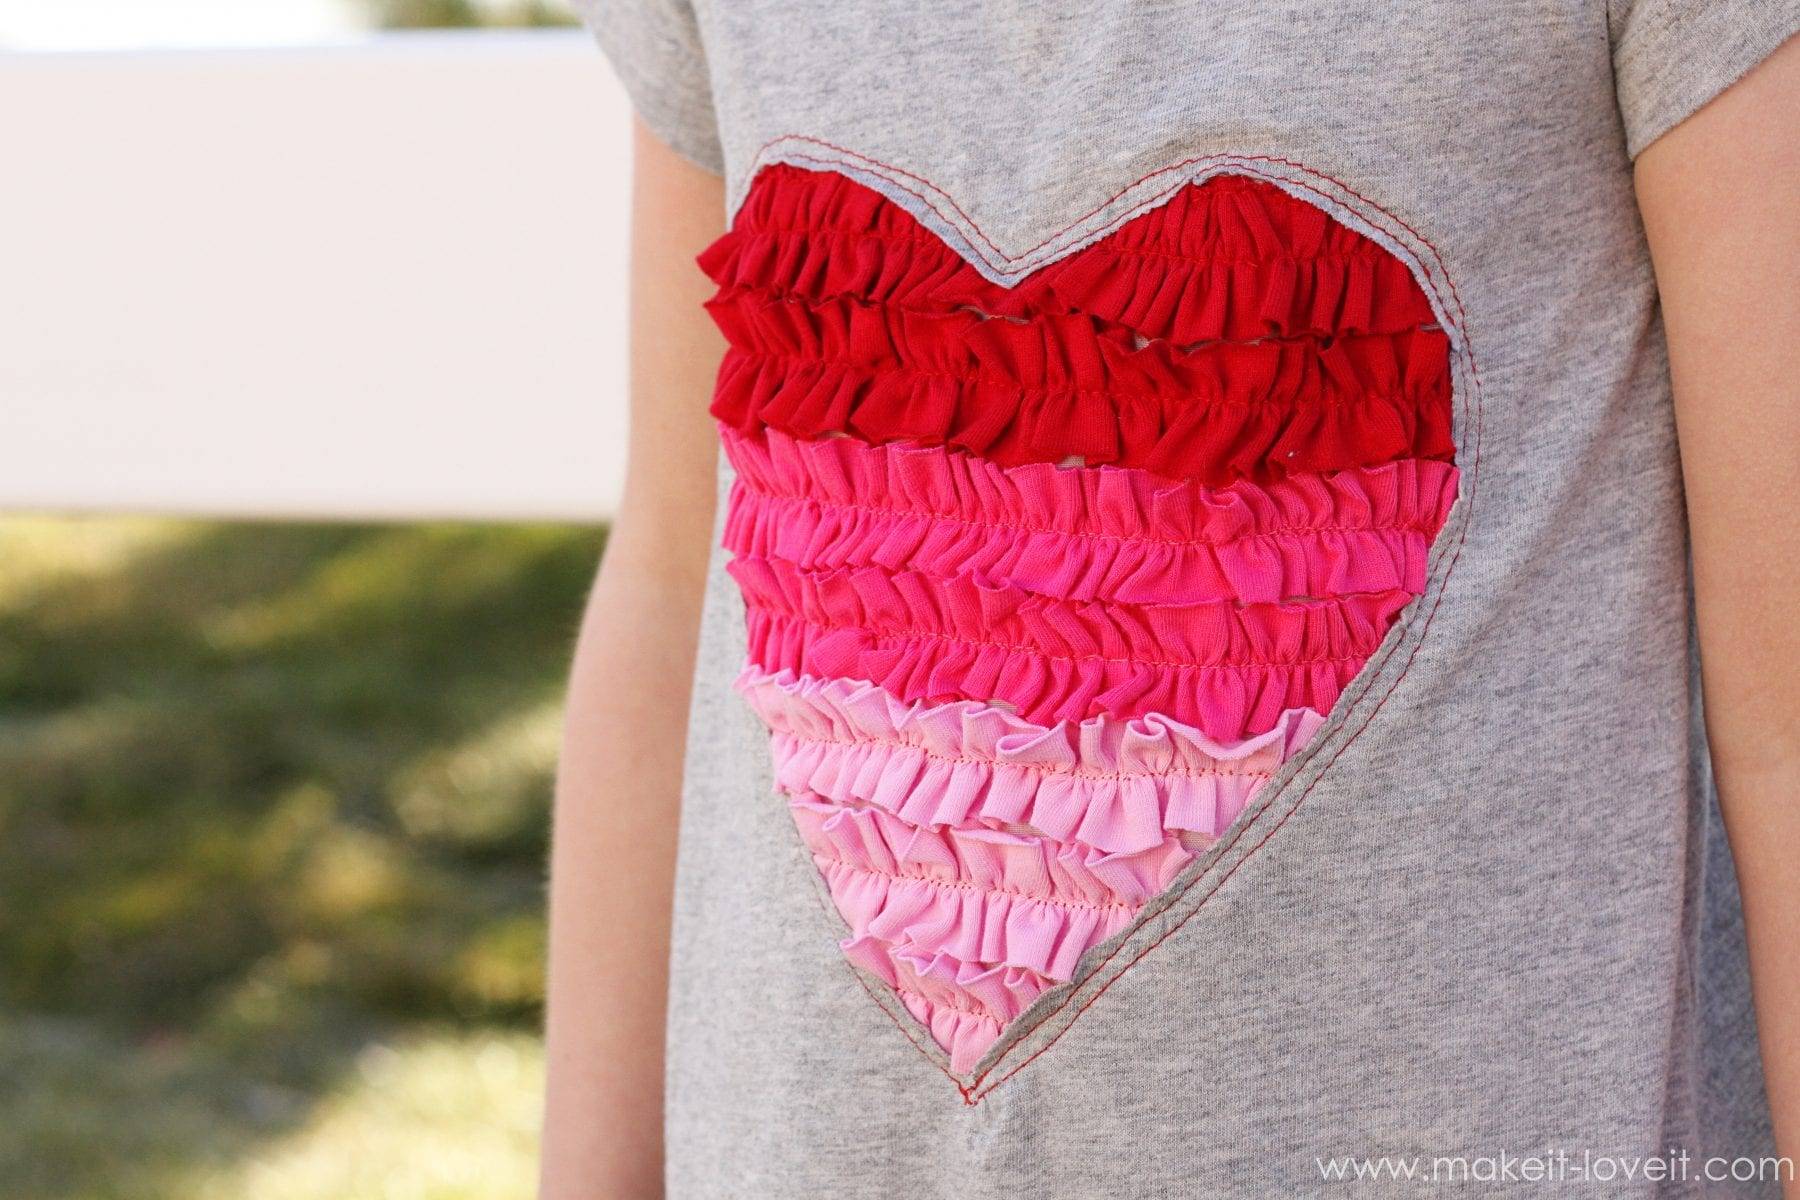 Ruffled Heart Valentine Dress Made From Recycled Tshirts